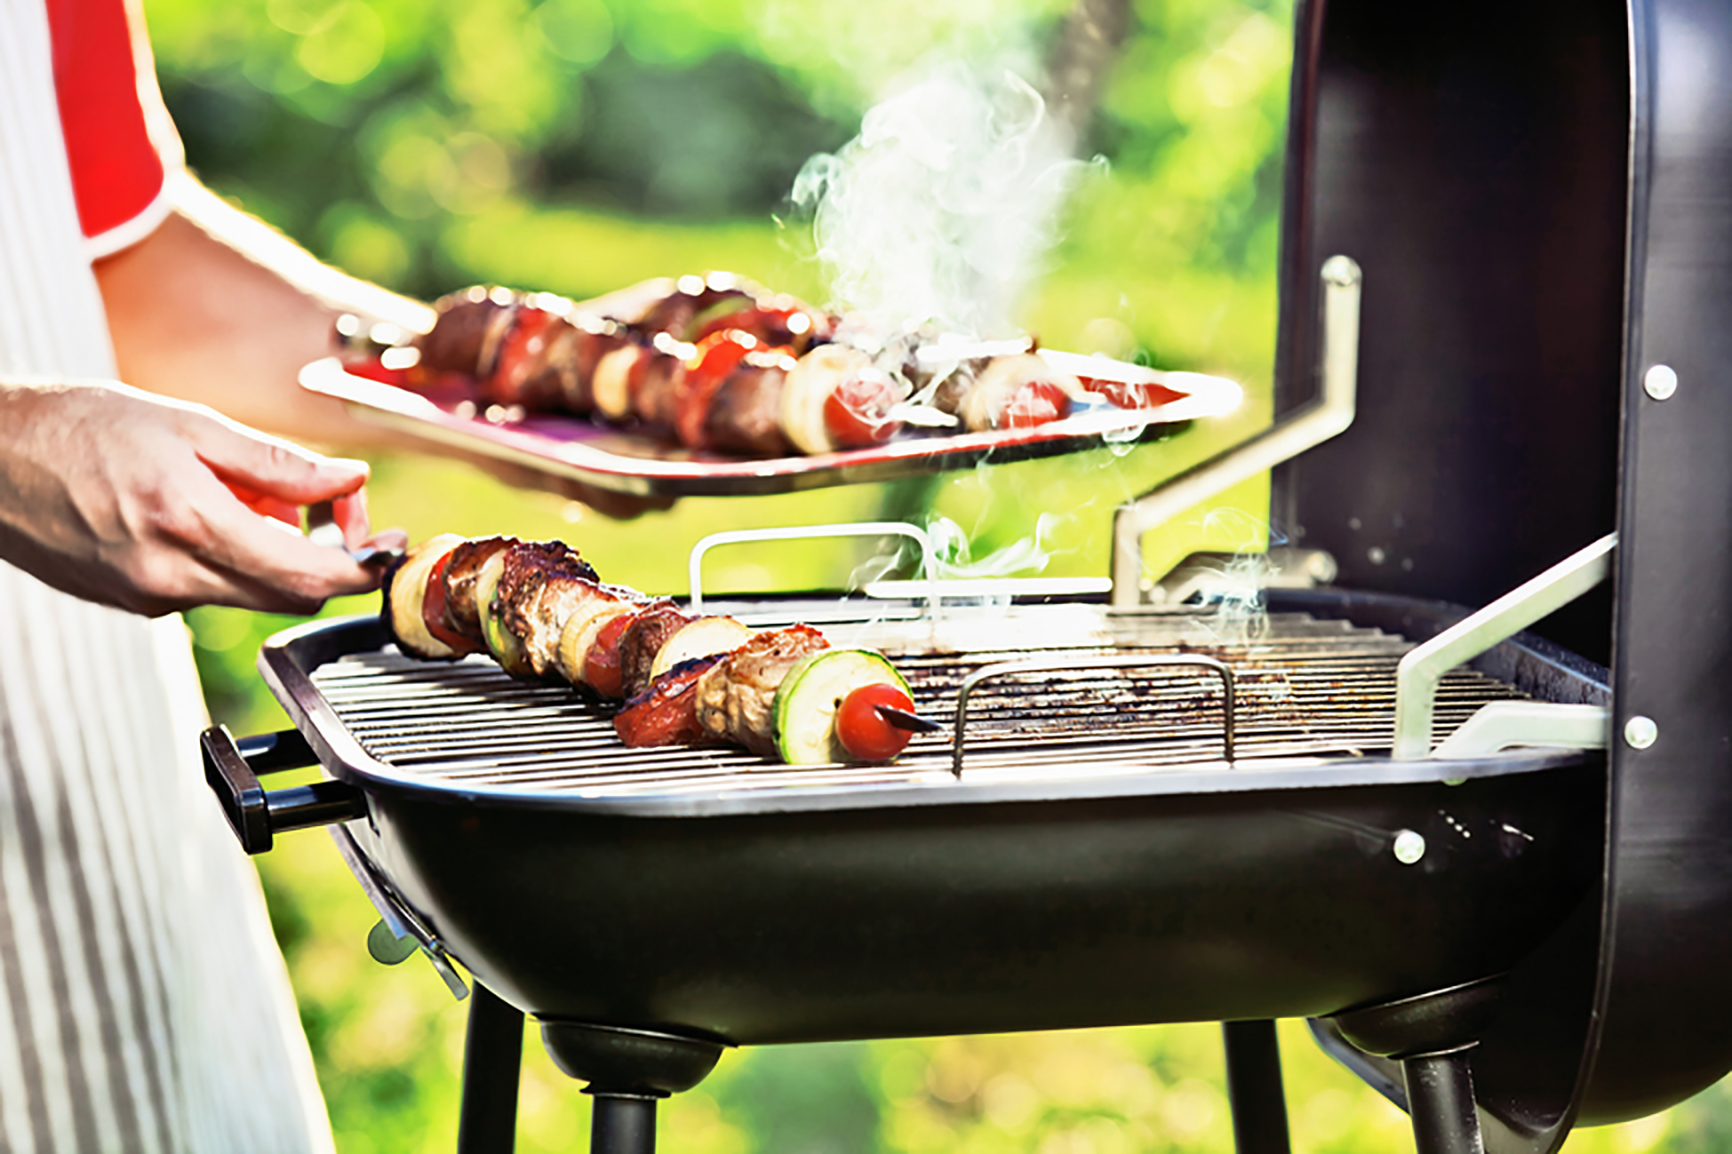 small barbecue grill with some grilled meat on sticks.